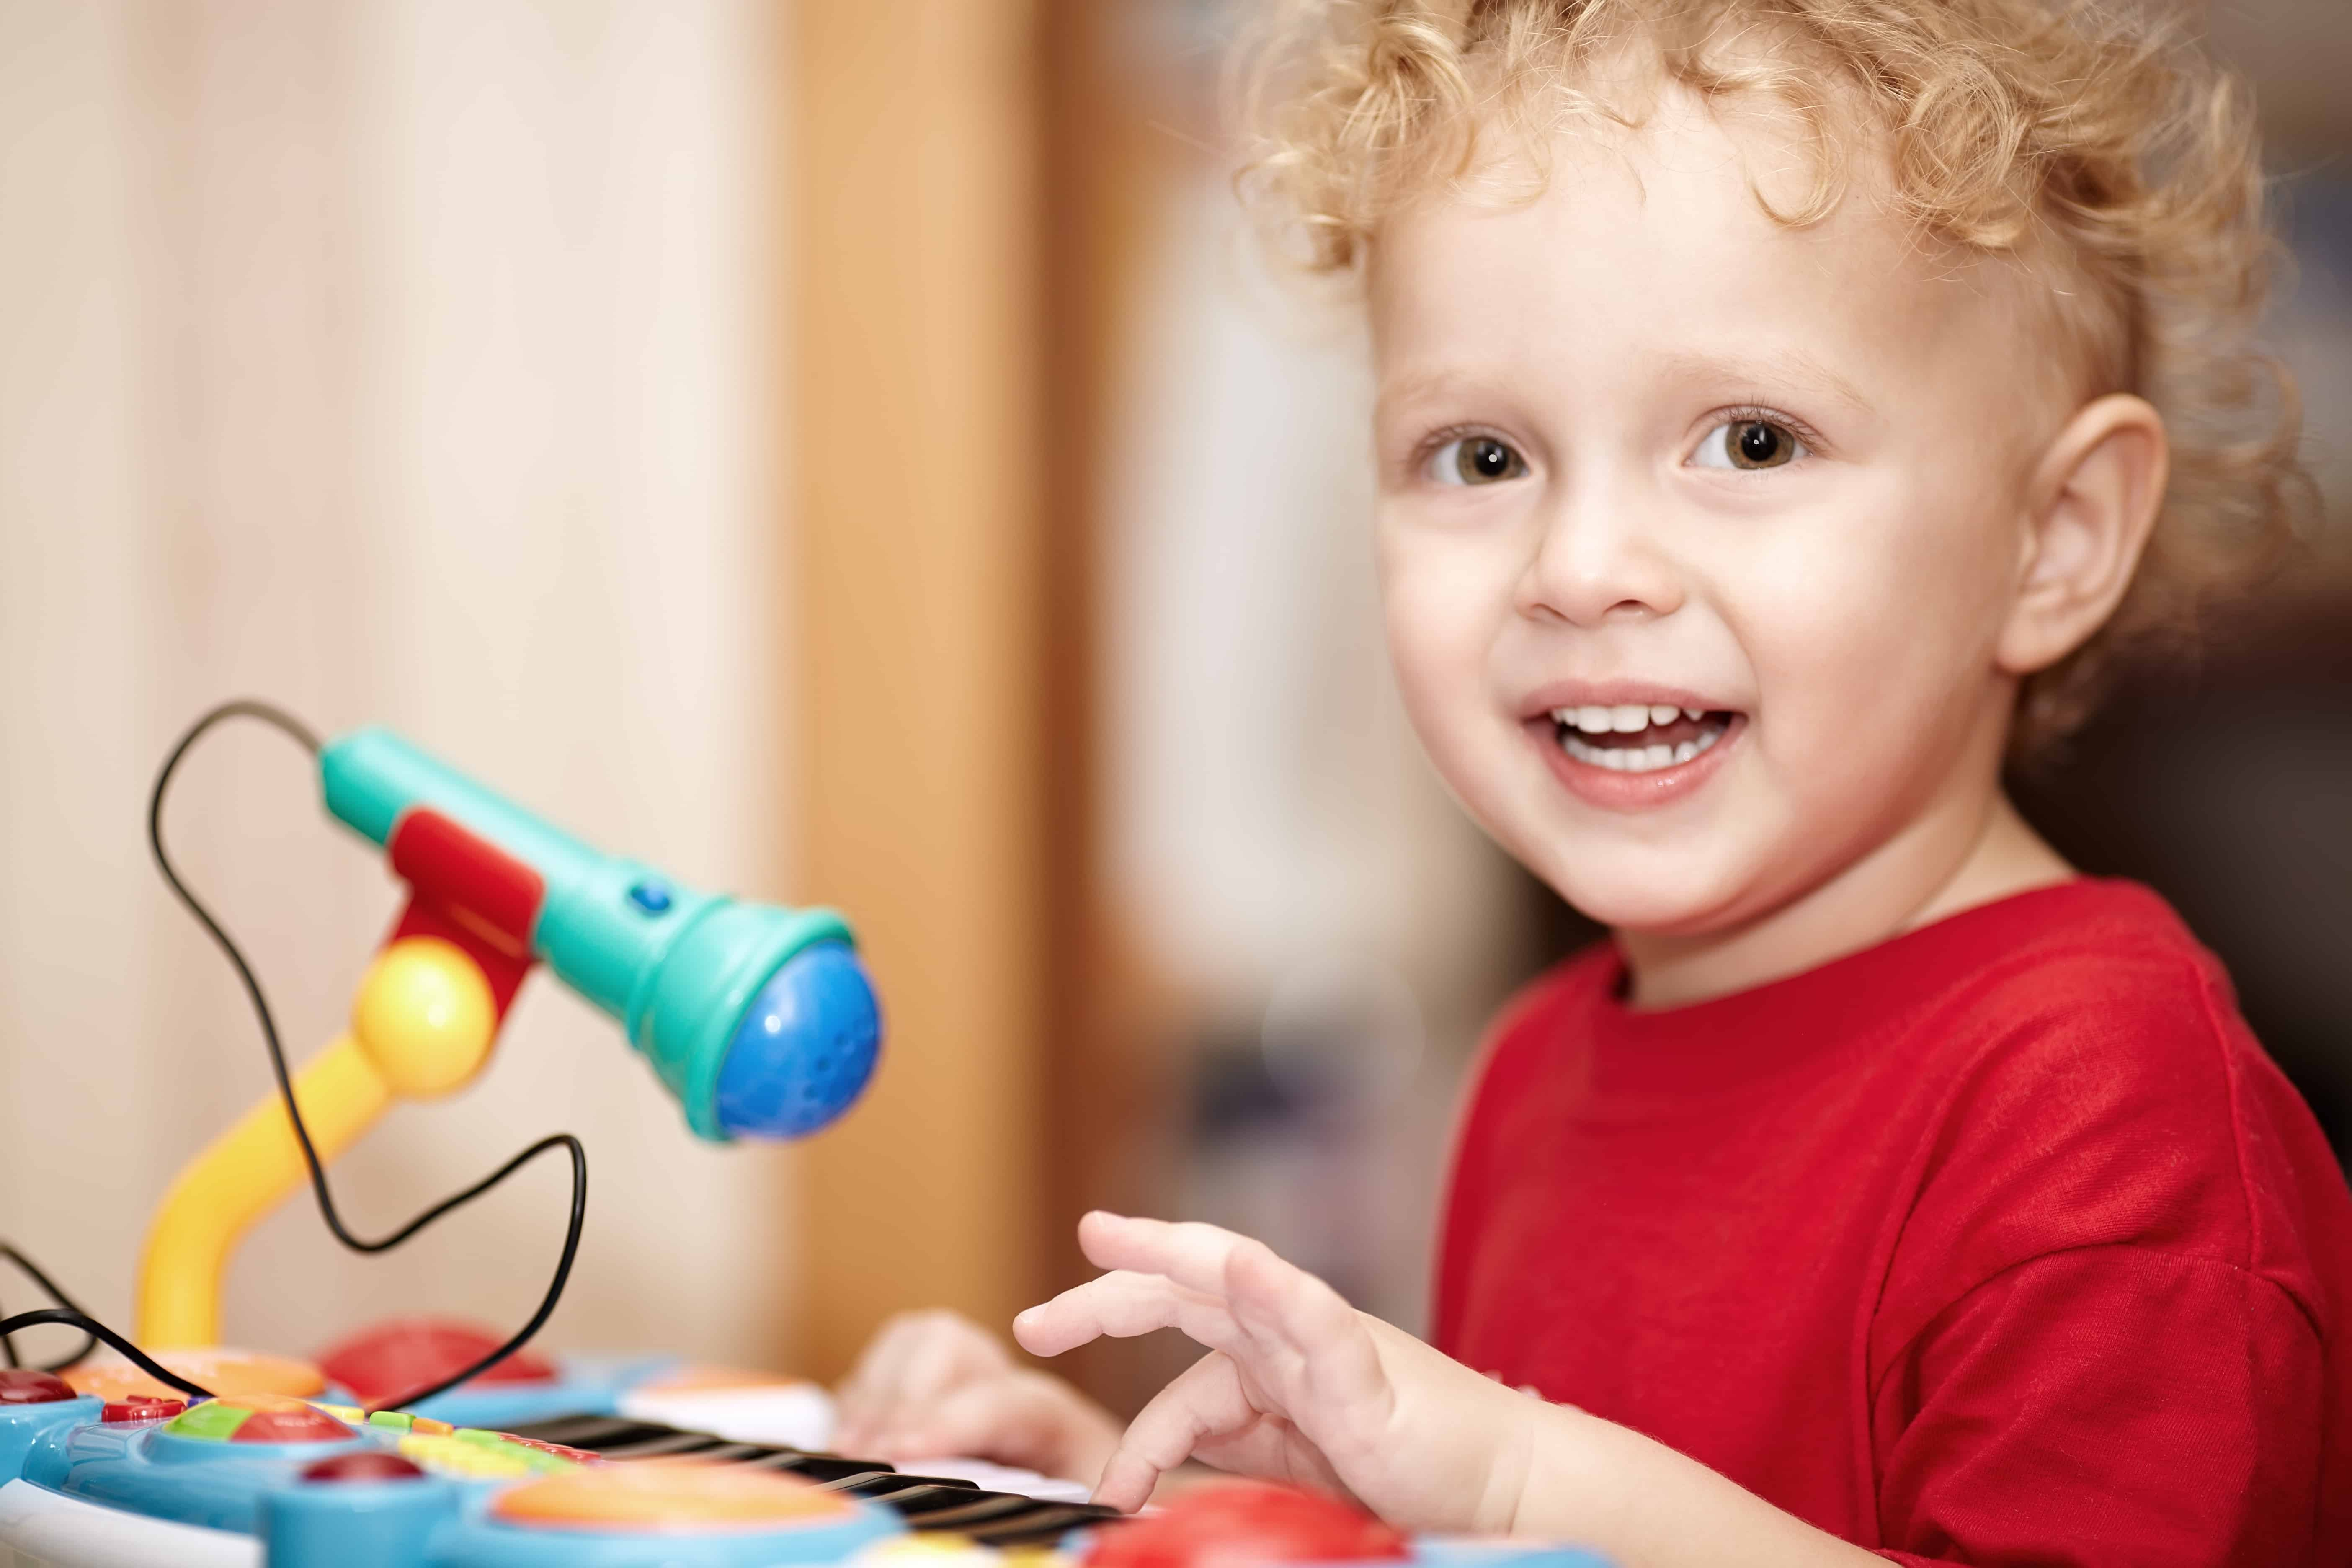 Four Ways to Develop Your Child's Musical Talents